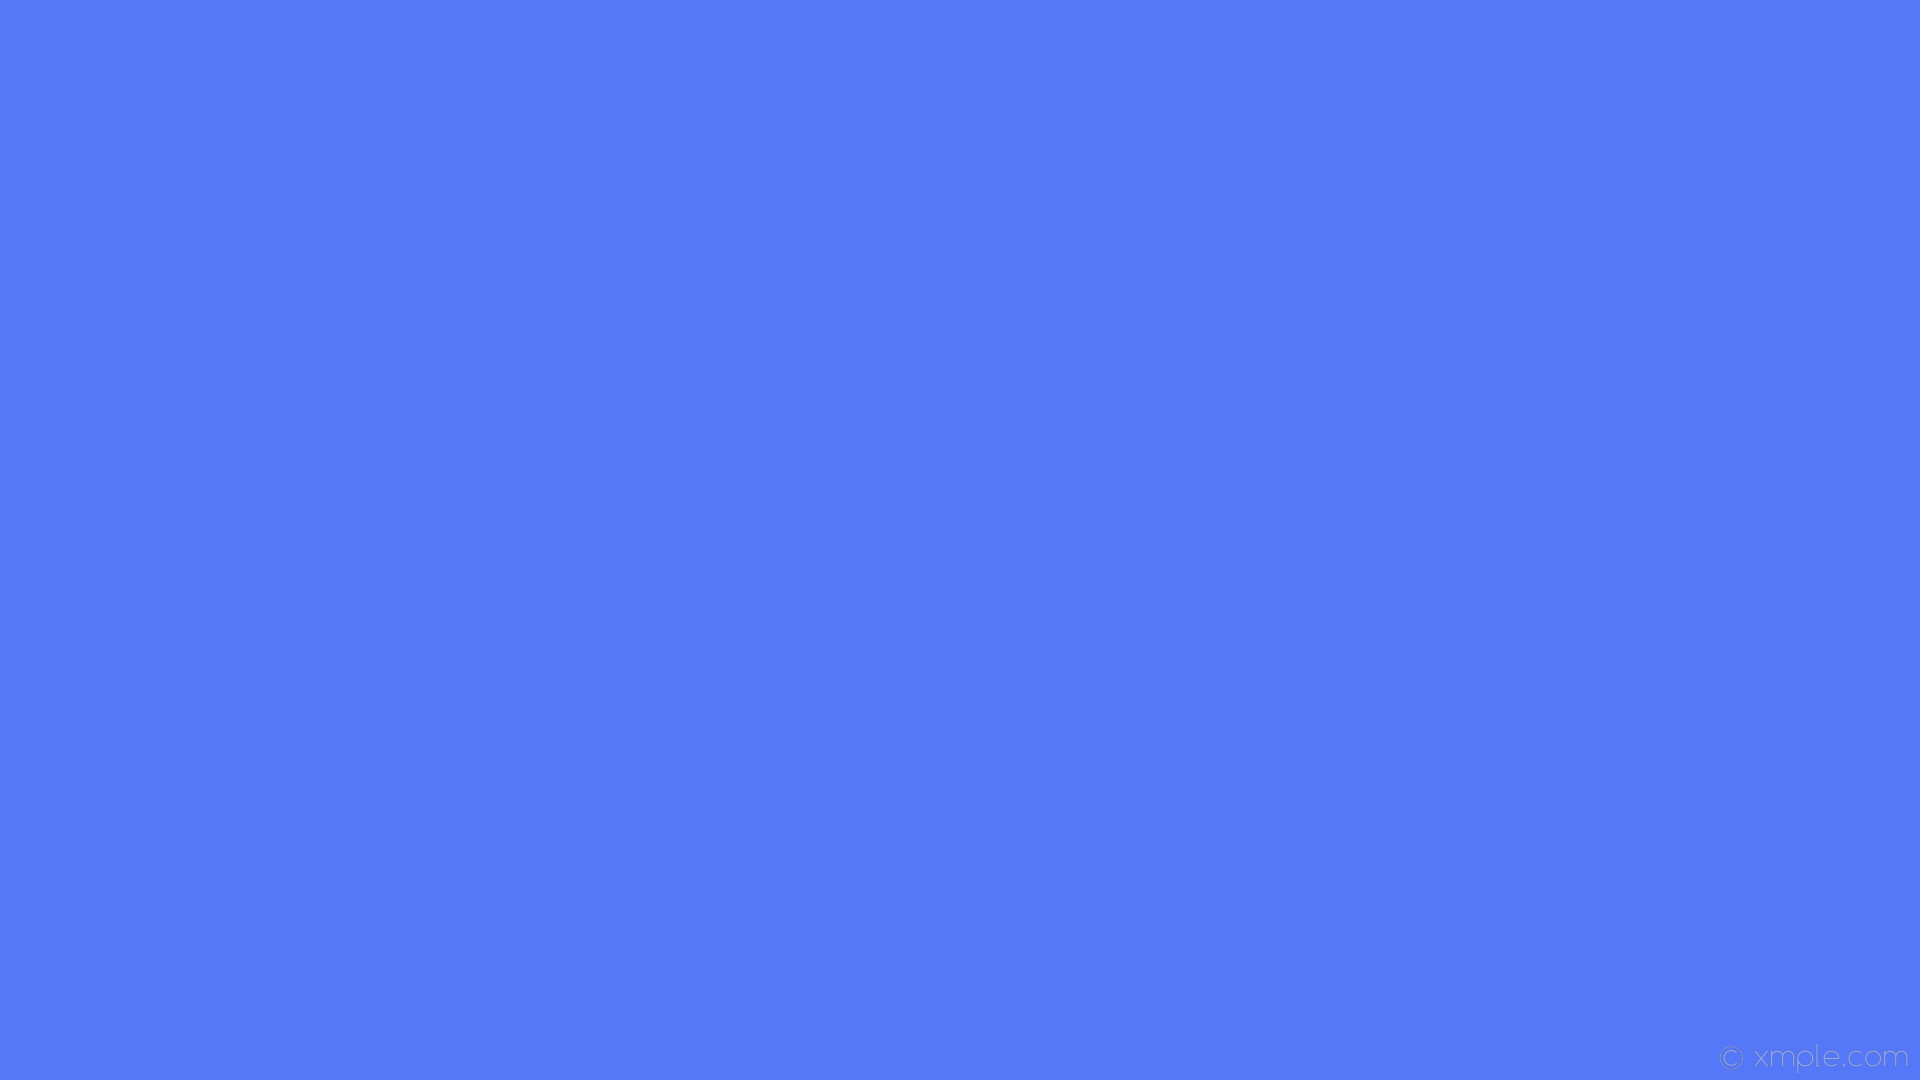 Plain Blue Screen Wallpaper 1920x1080 ·① WallpaperTag